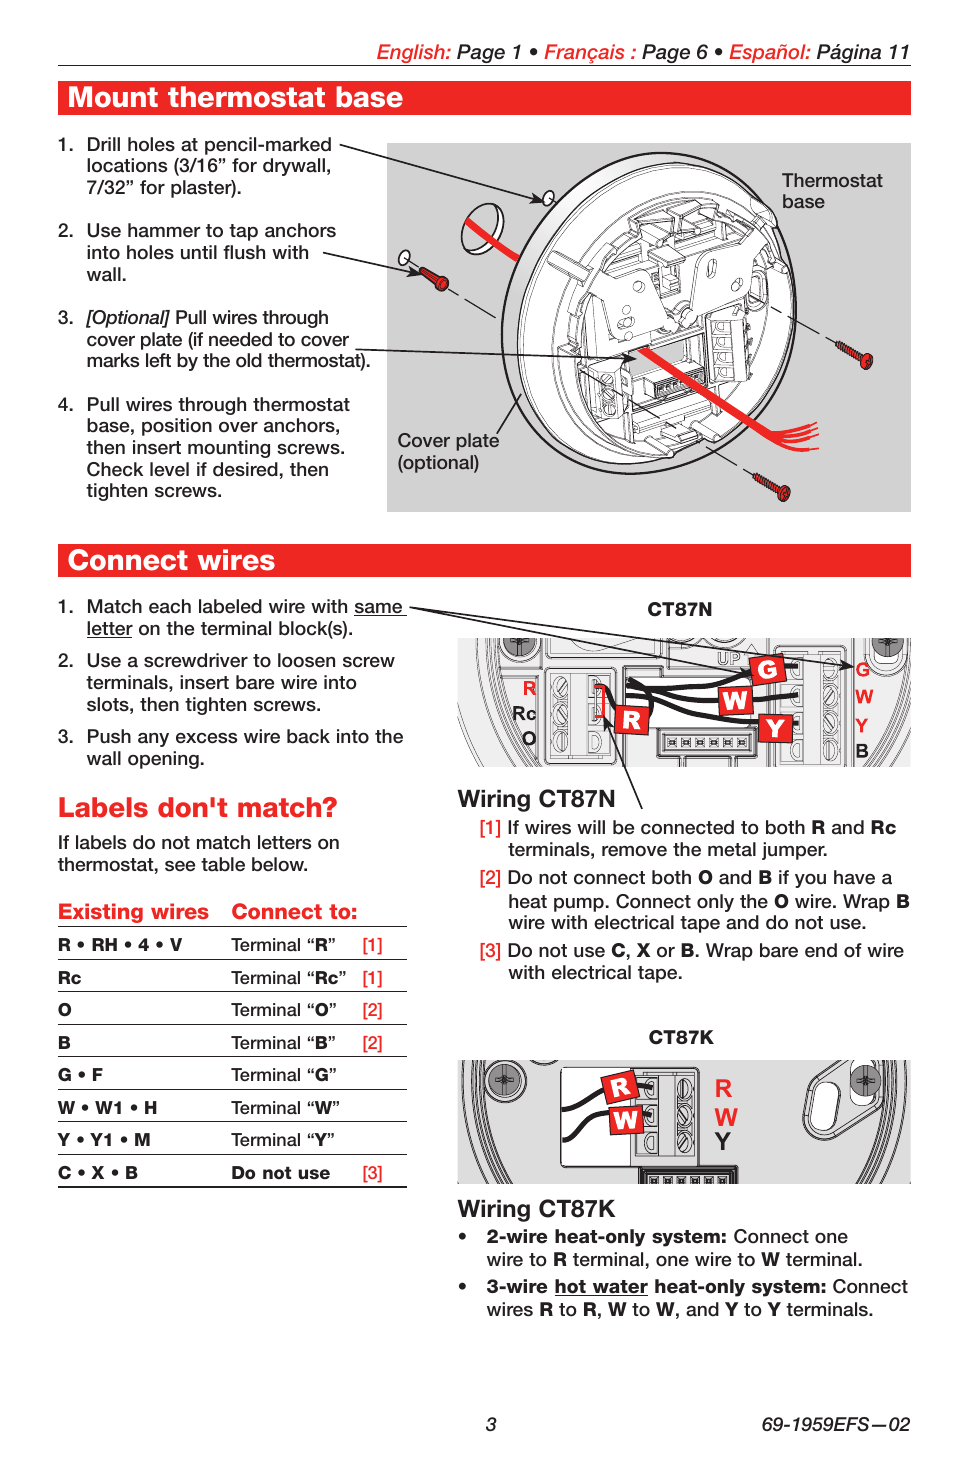 honeywell t87k thermostat wiring diagram honeywell